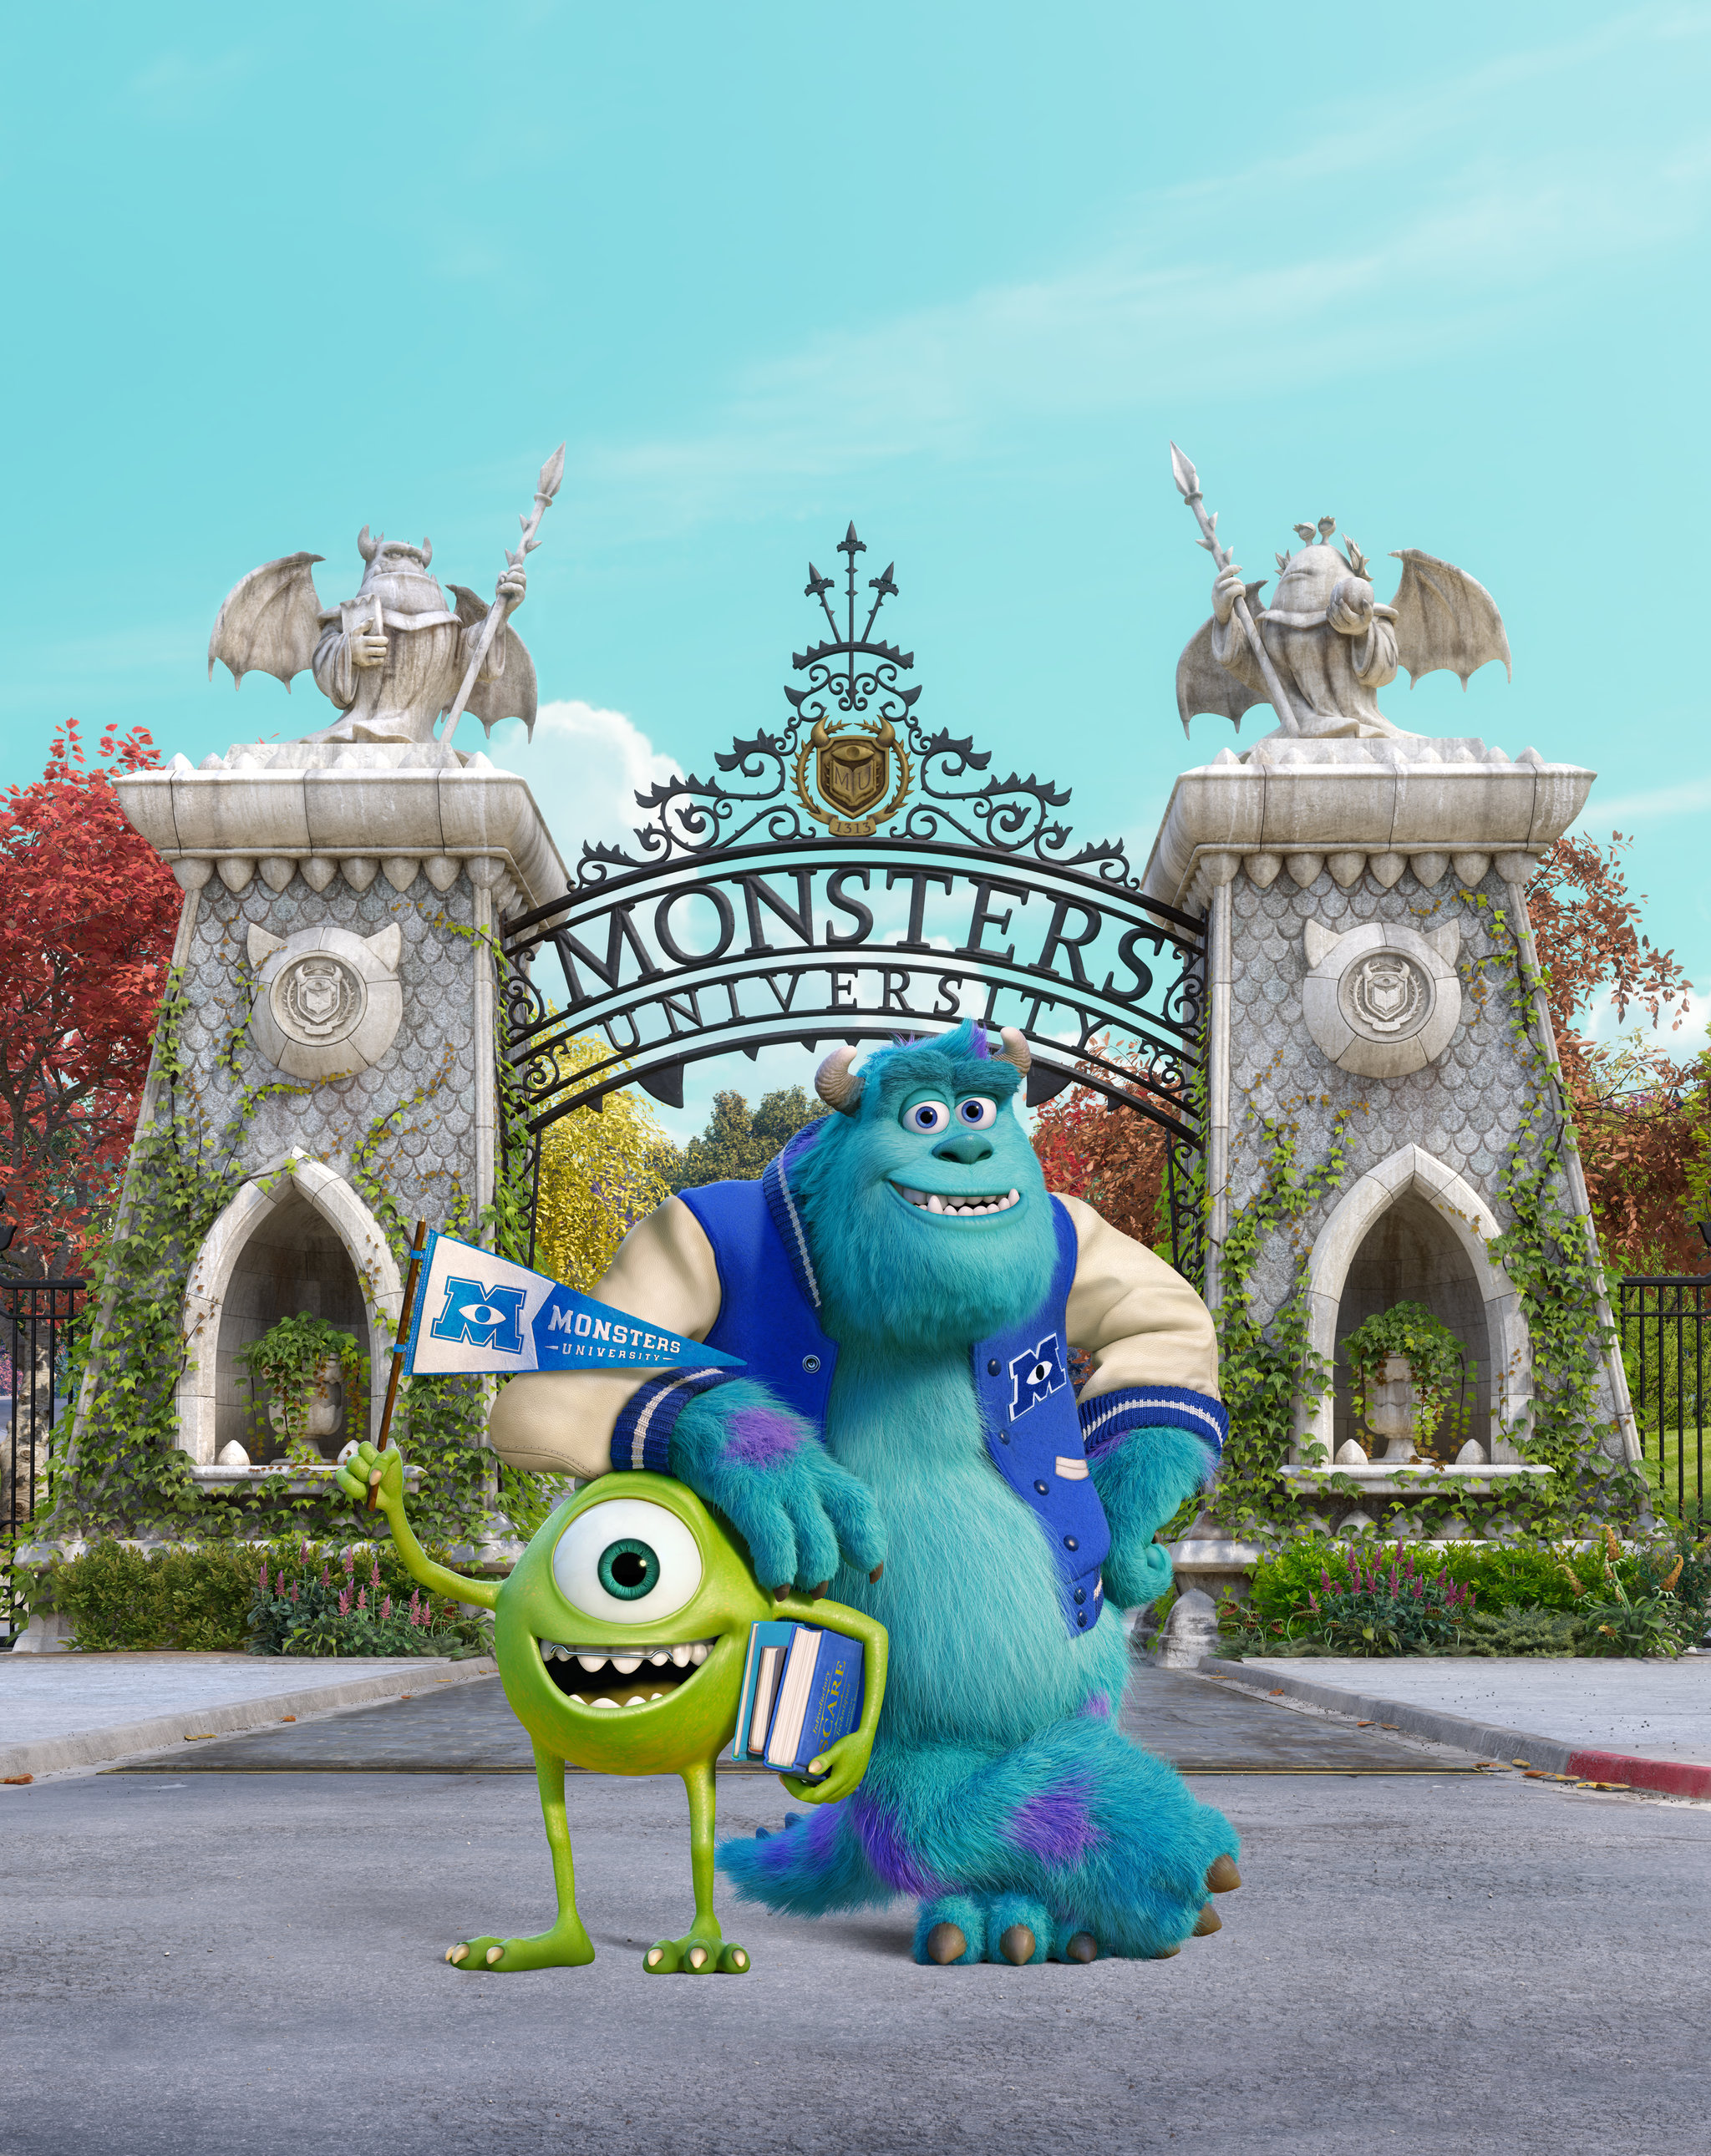 Wallpaper iphone monster university - Monsters University Wallpaper For Iphone